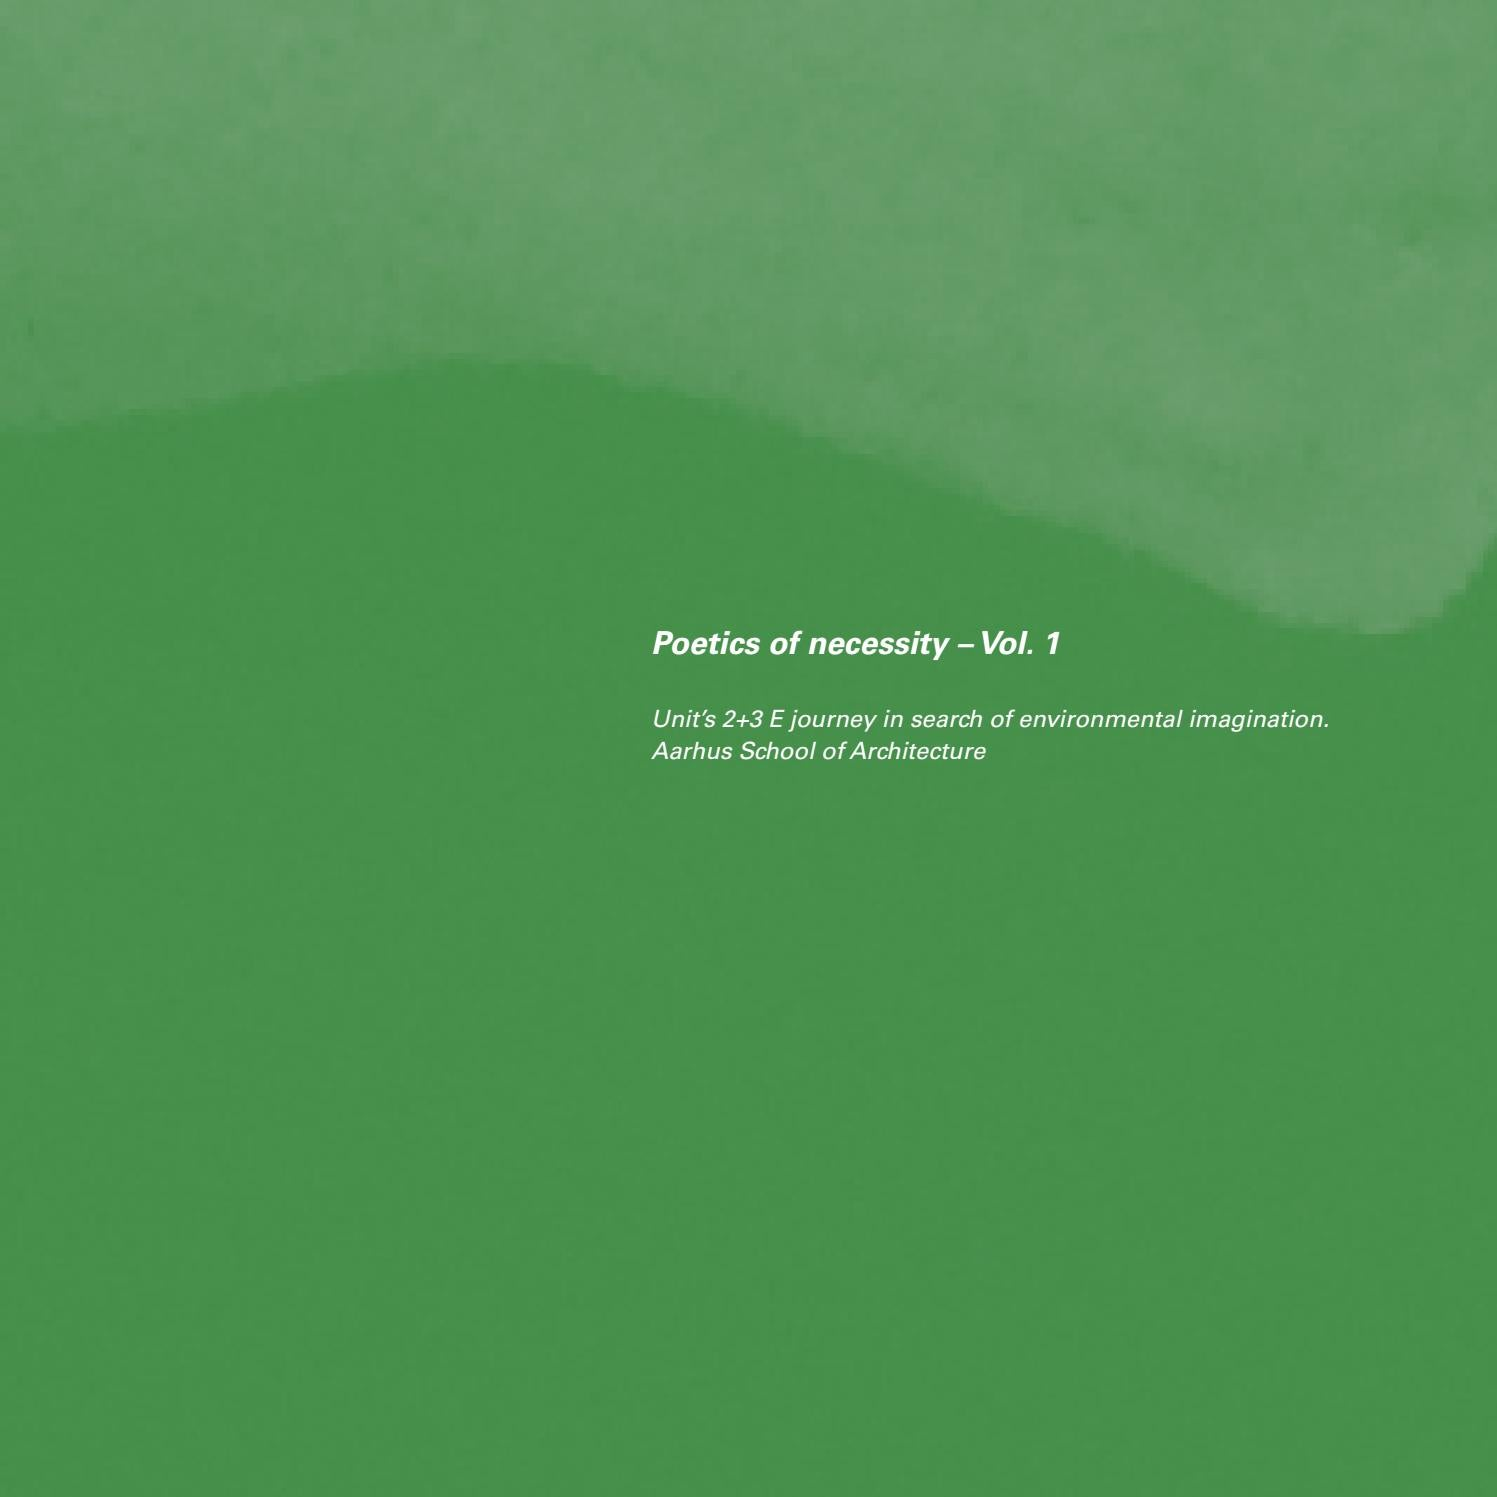 Poetics of necessity units 2 3 e journey in search of environmental imagination vol